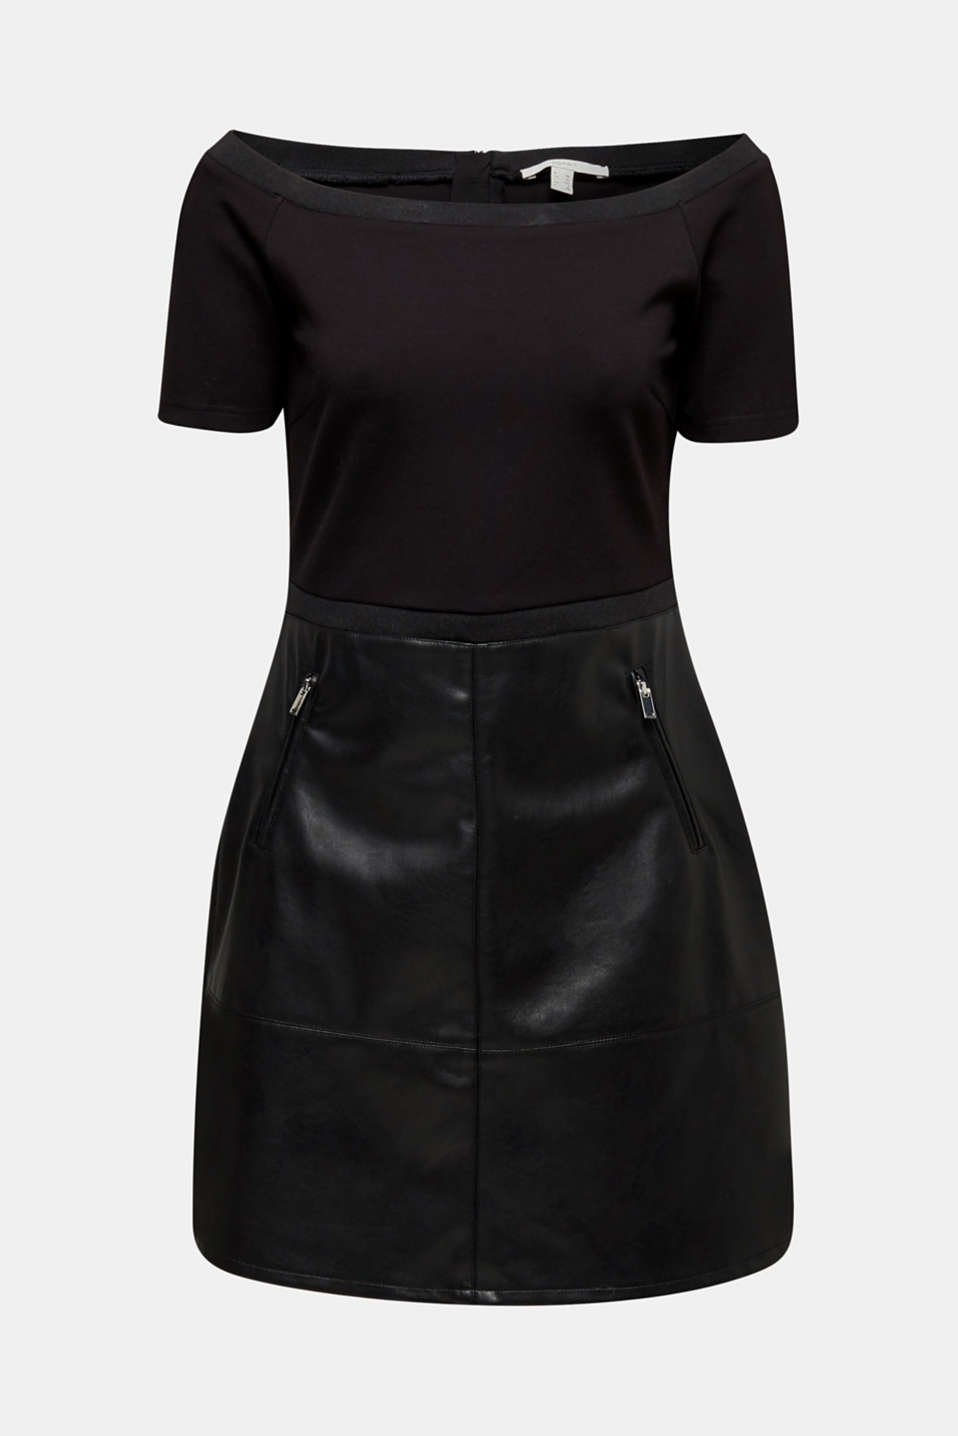 Imitation leather dress in a mix of materials, BLACK, detail image number 5